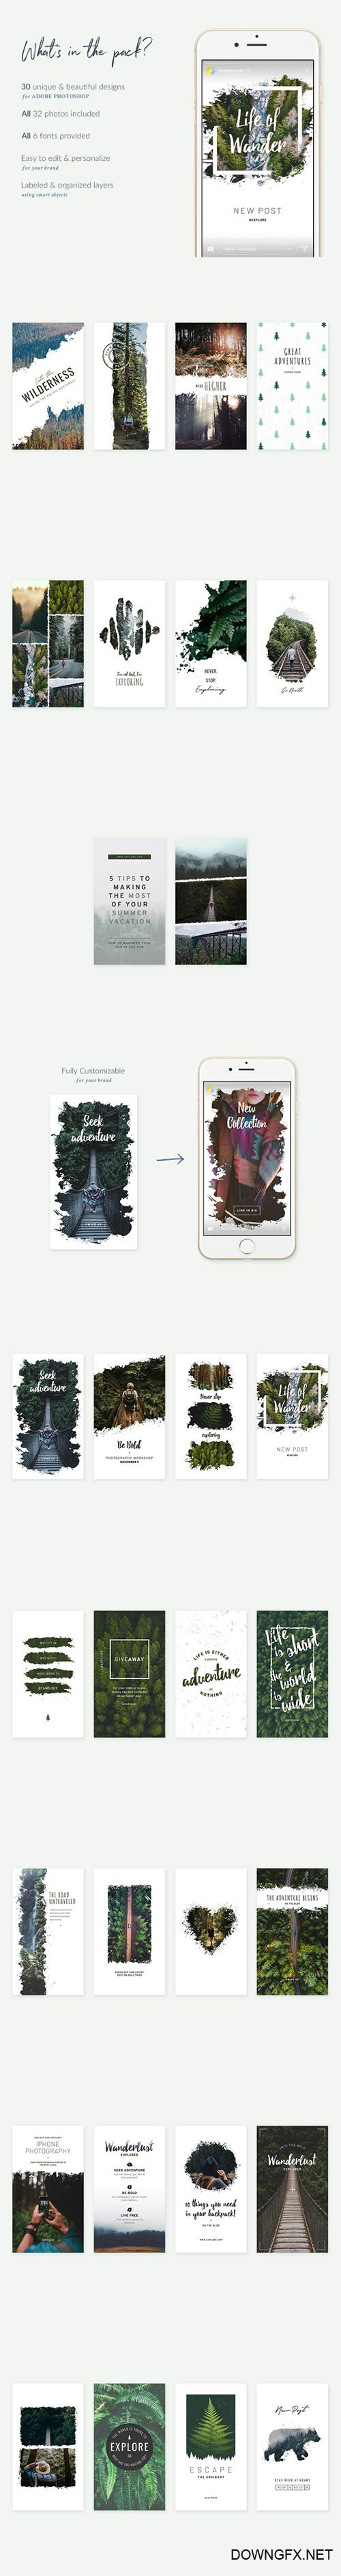 Forests Instagram Stories - 30 Beautiful Instagram Story templates designed in Photoshop